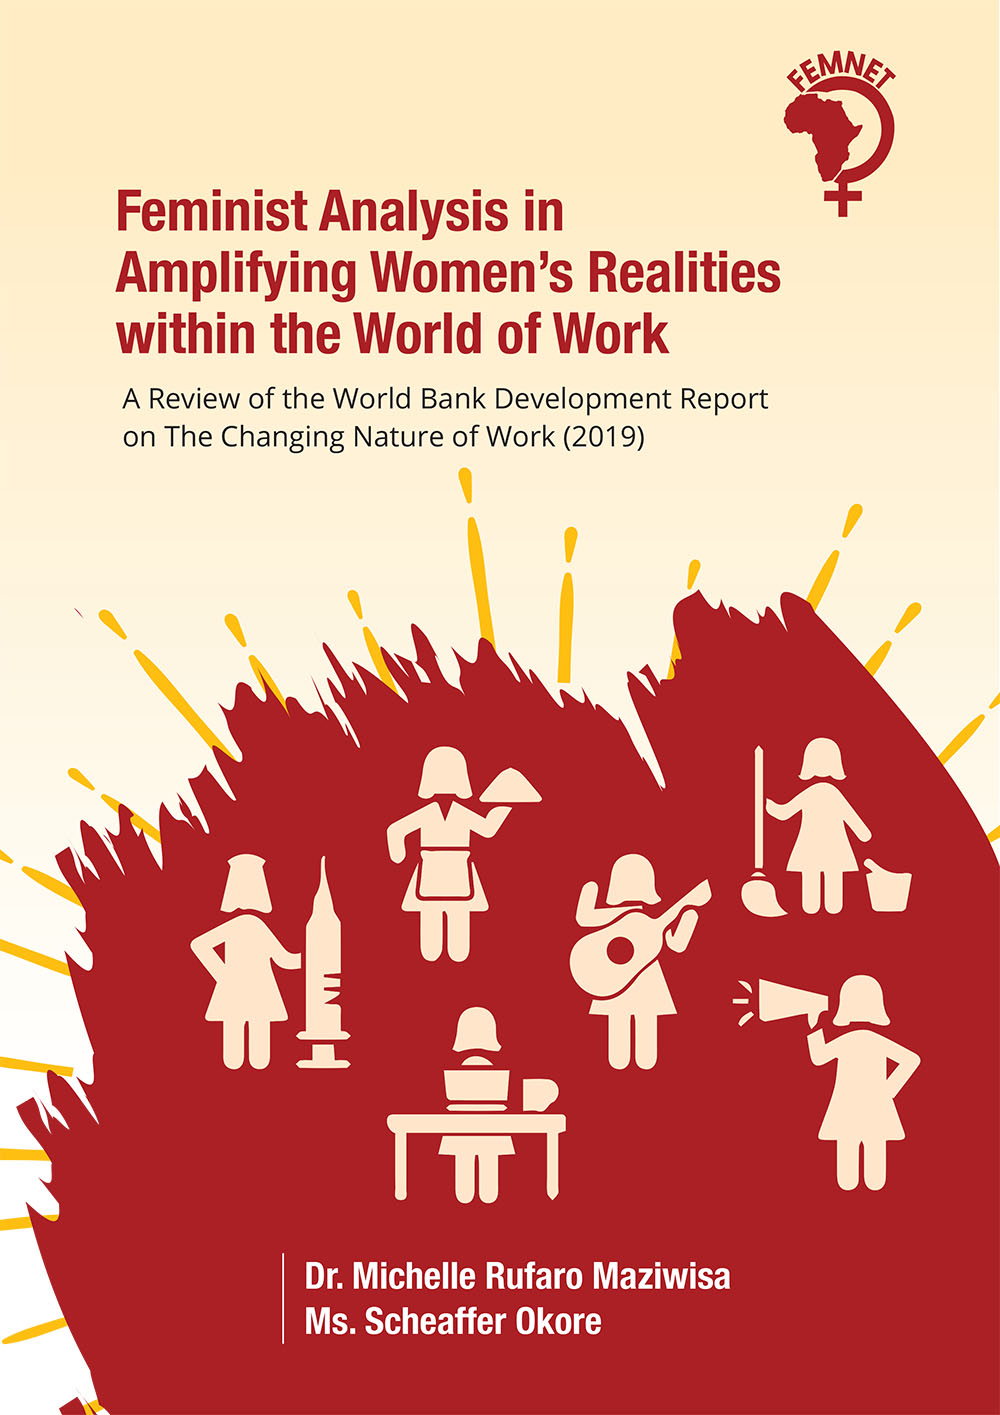 Feminist Analysis in Amplifying Women's Realities within the World of Work